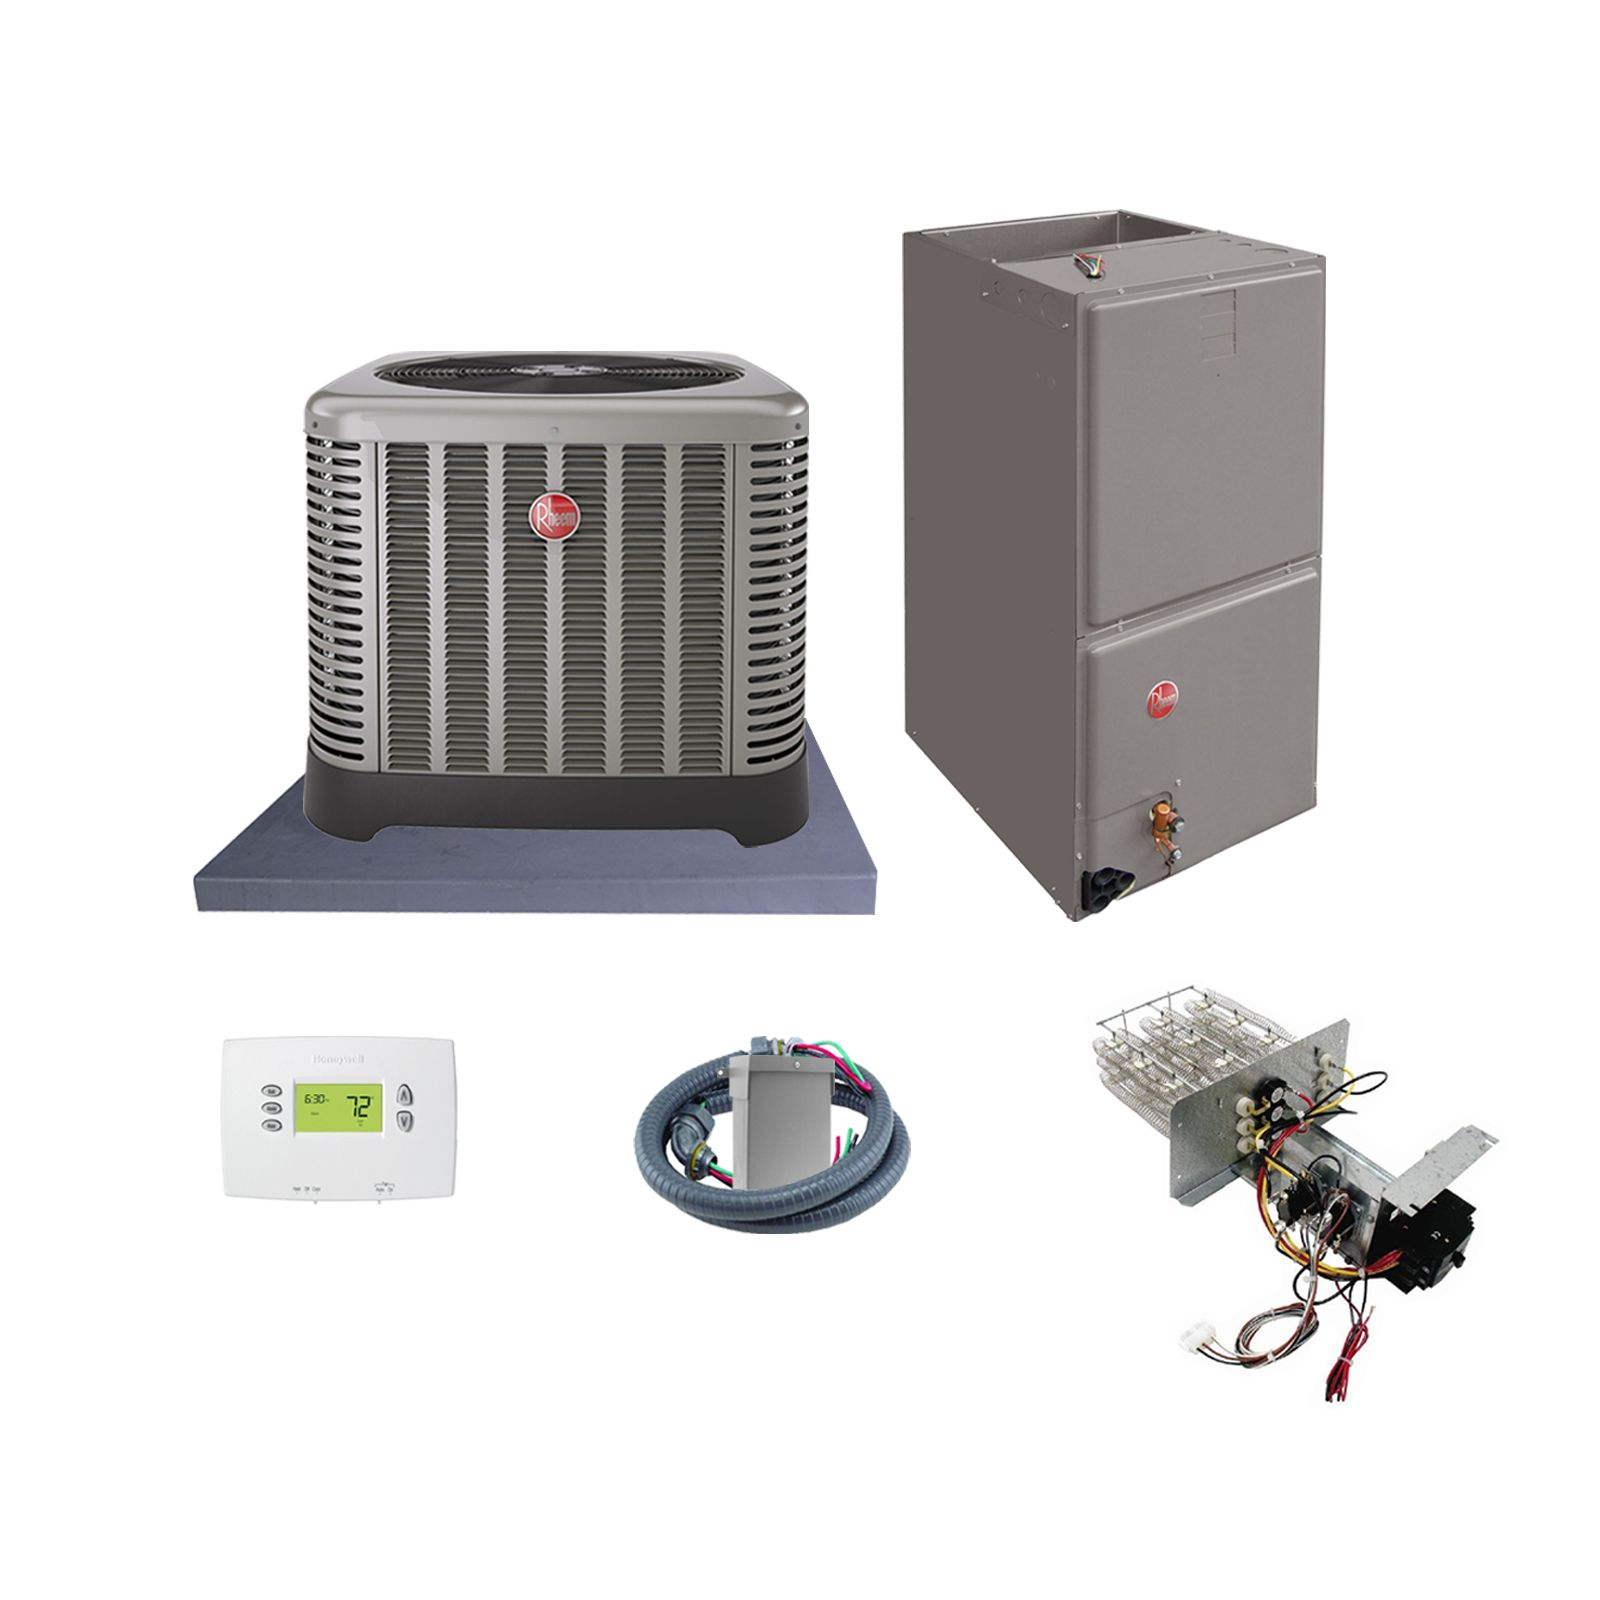 Rheem (AHRI 7600905) 4 Ton, 14 SEER/11.5 EER Classic Series, Horizontal Air Conditioner Split System and Install Kit